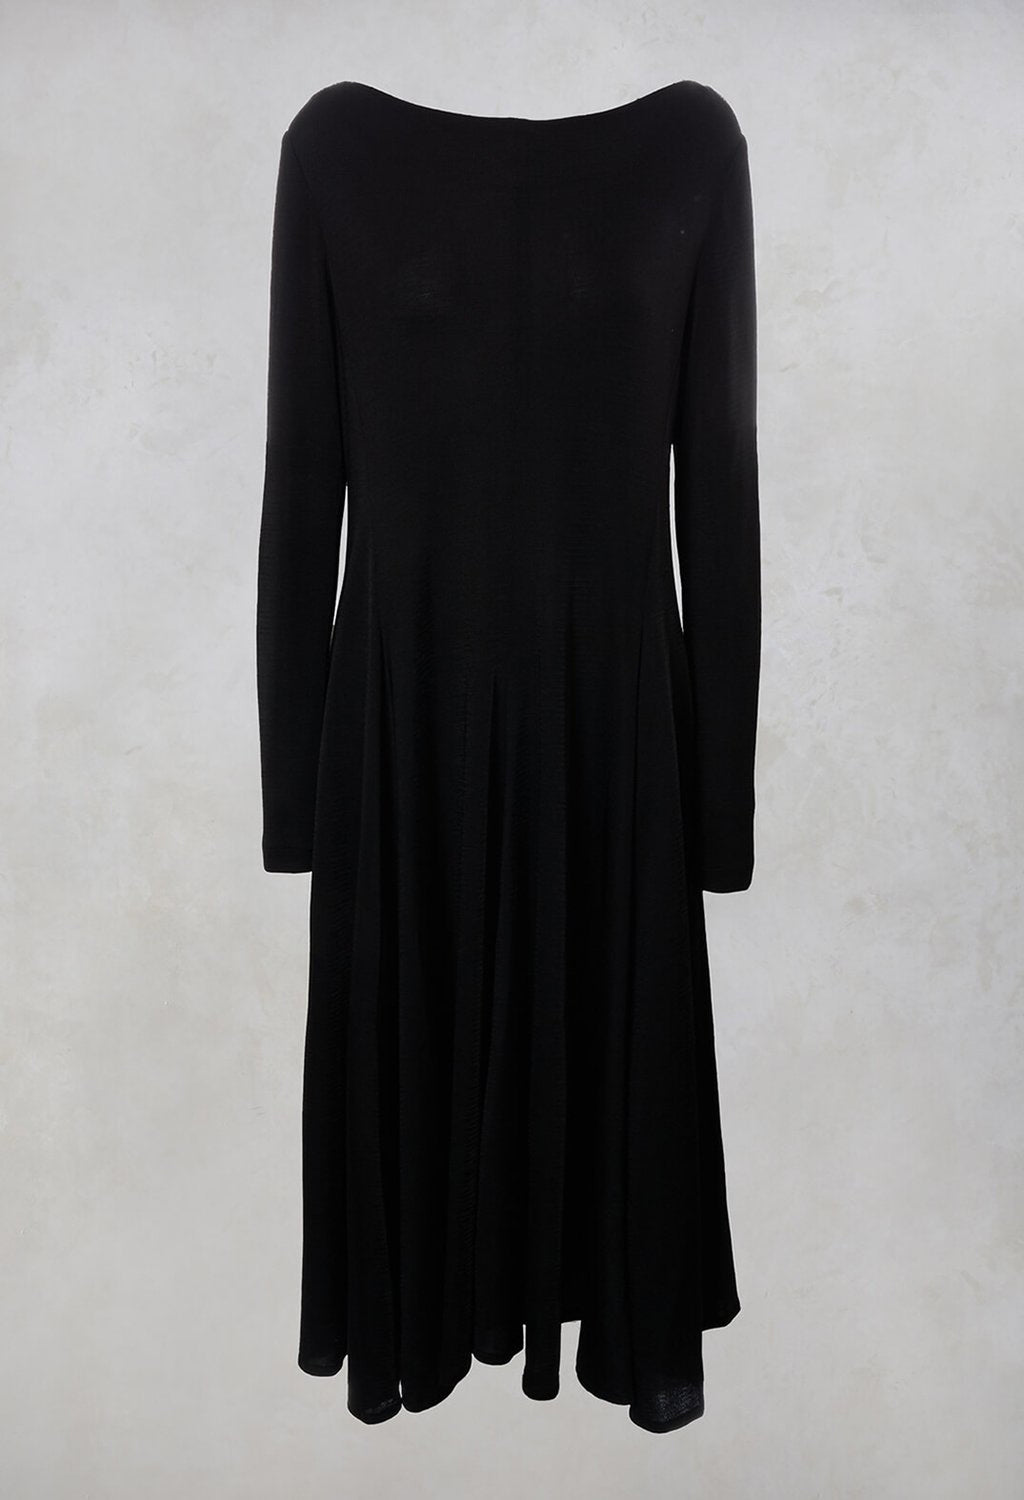 A Line Dress in Black